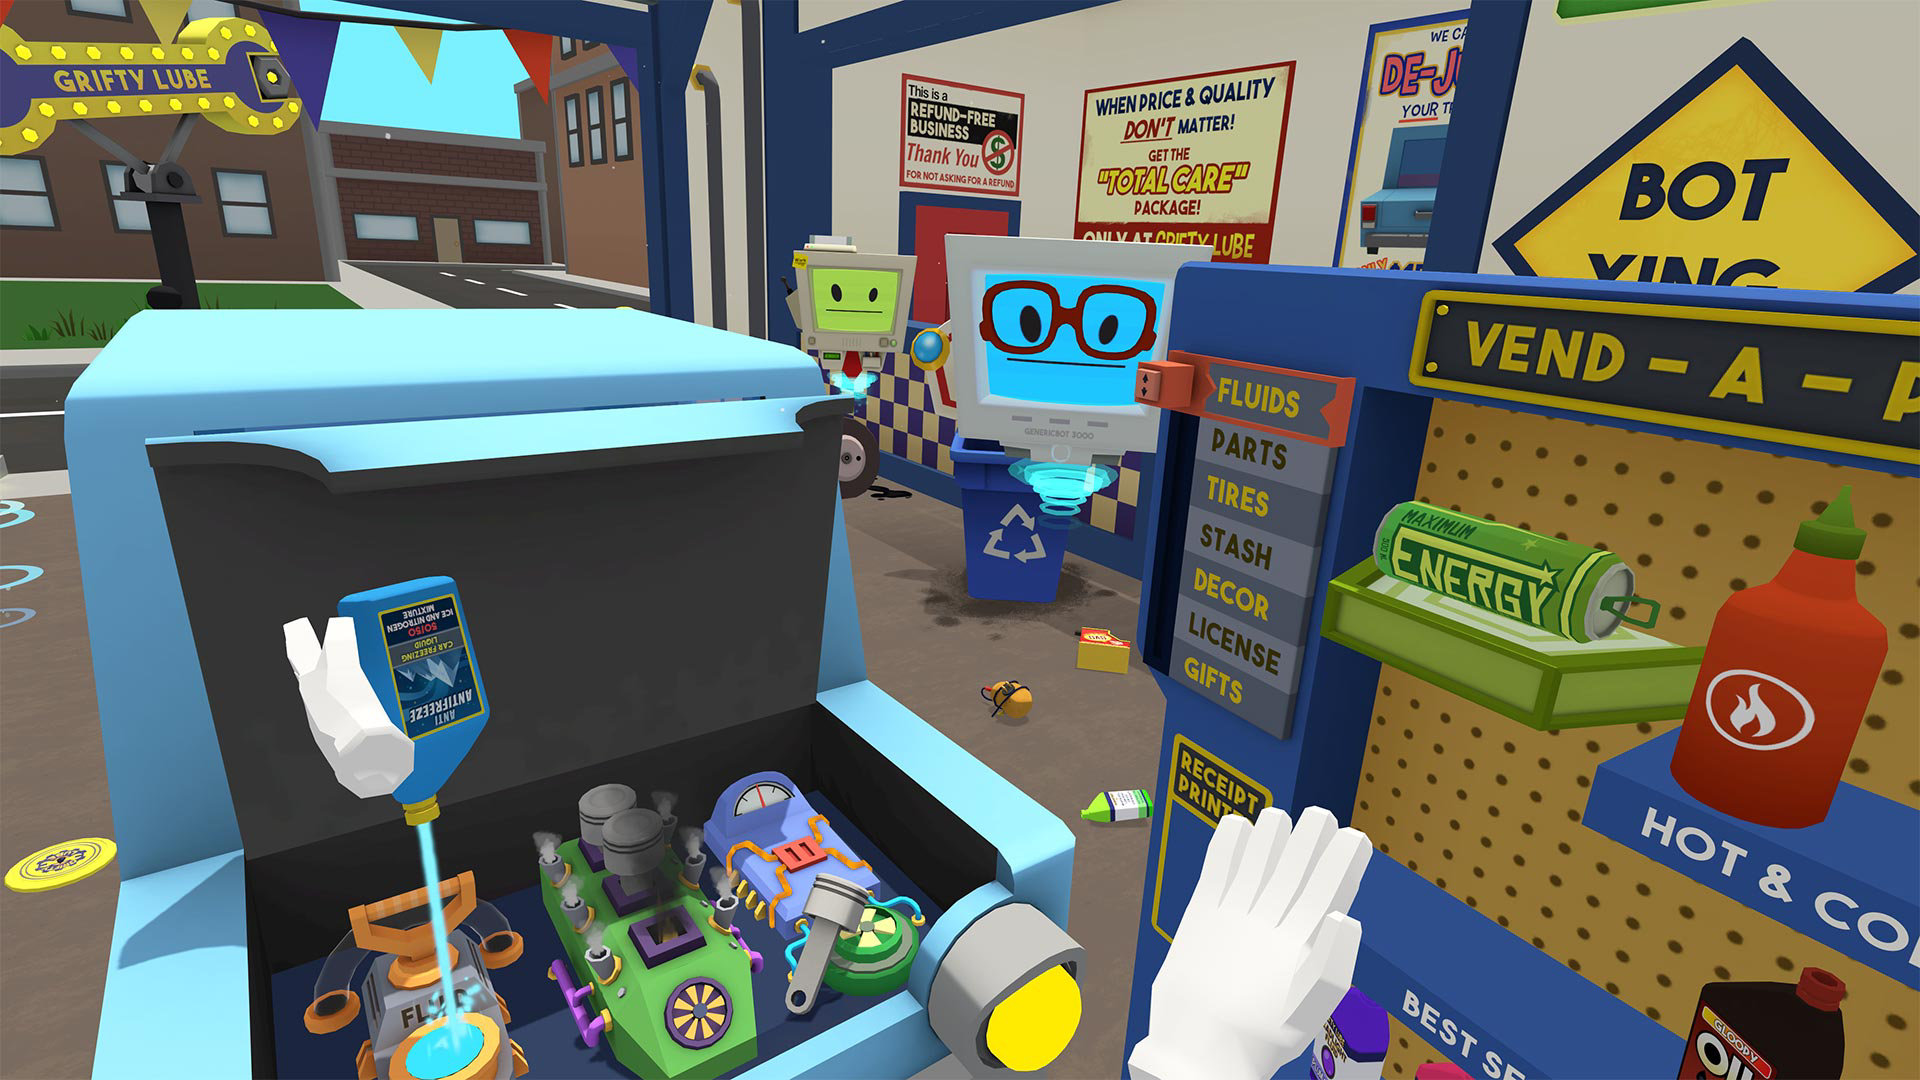 Job Simulator Has Become The Second 'Made for VR' Game To Sell Over One Million Copies, Who Knew Work Could Be So Fun